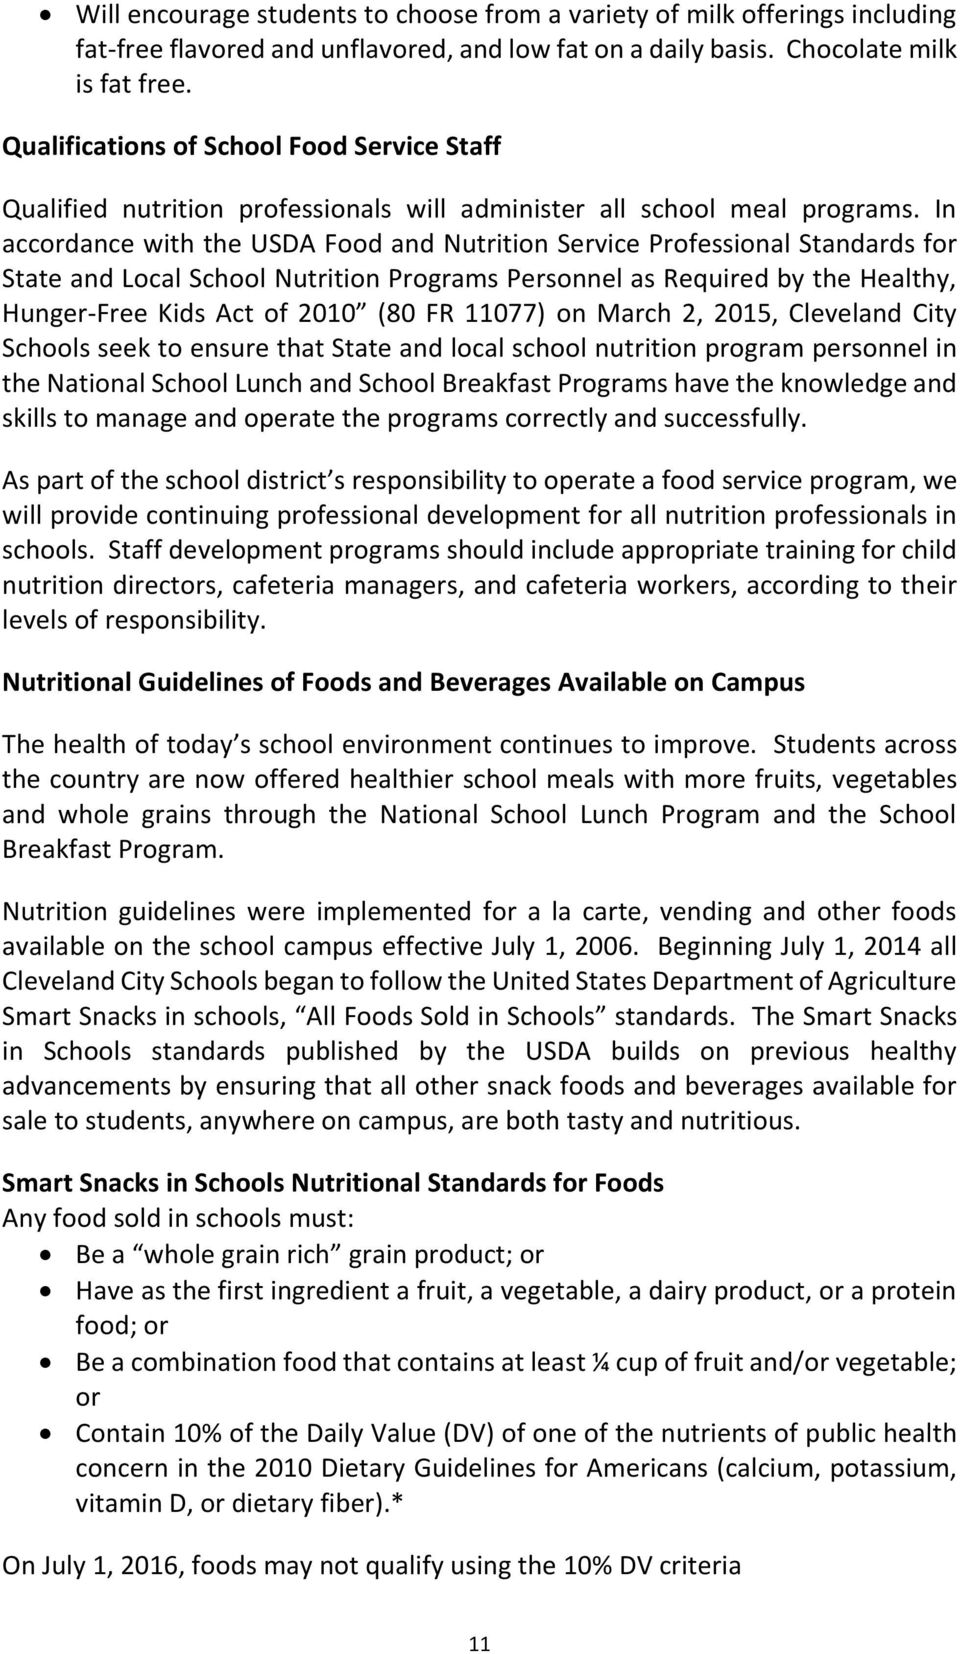 In accordance with the USDA Food and Nutrition Service Professional Standards for State and Local School Nutrition Programs Personnel as Required by the Healthy, Hunger-Free Kids Act of 2010 (80 FR